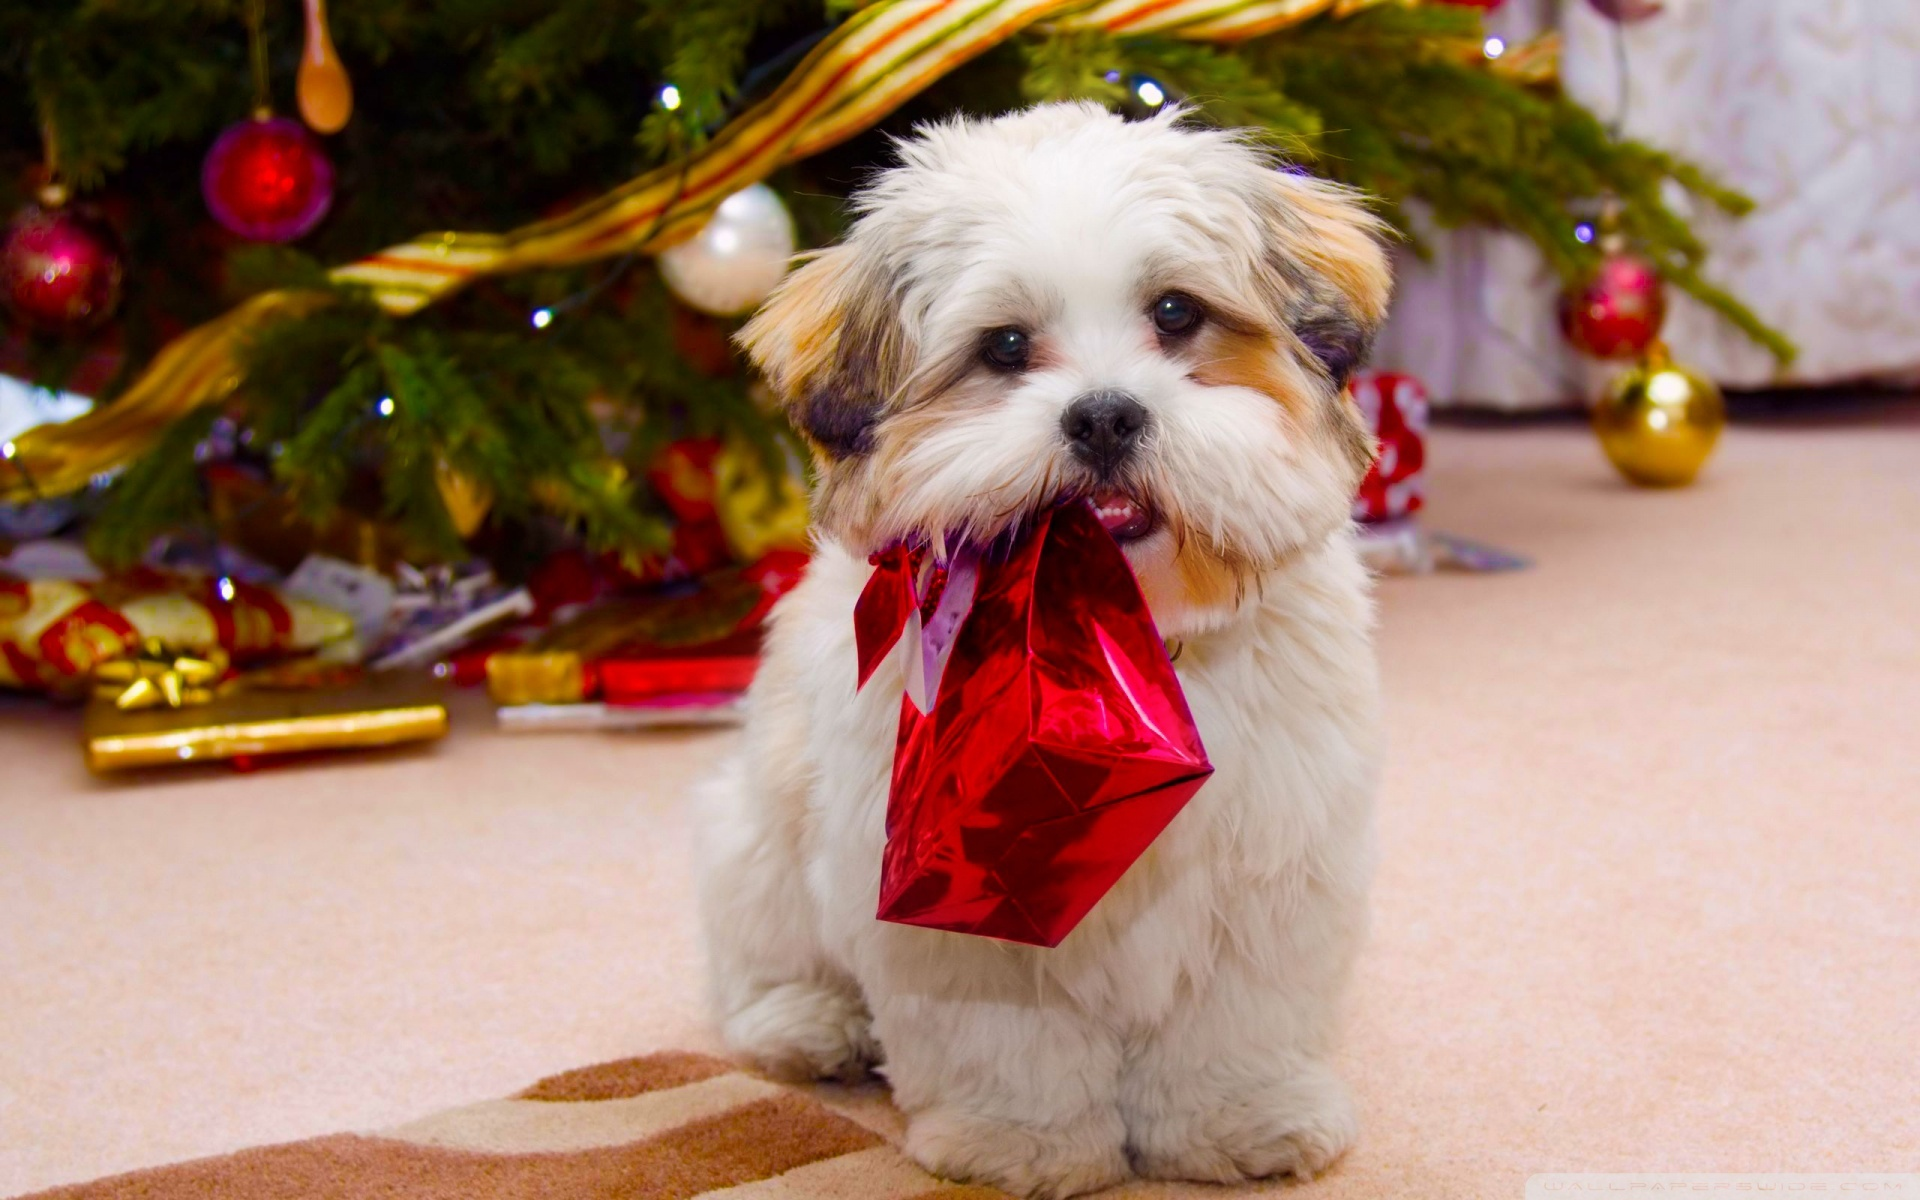 cute dog christmas wallpapers HD Desktop Wallpapers 1920x1200